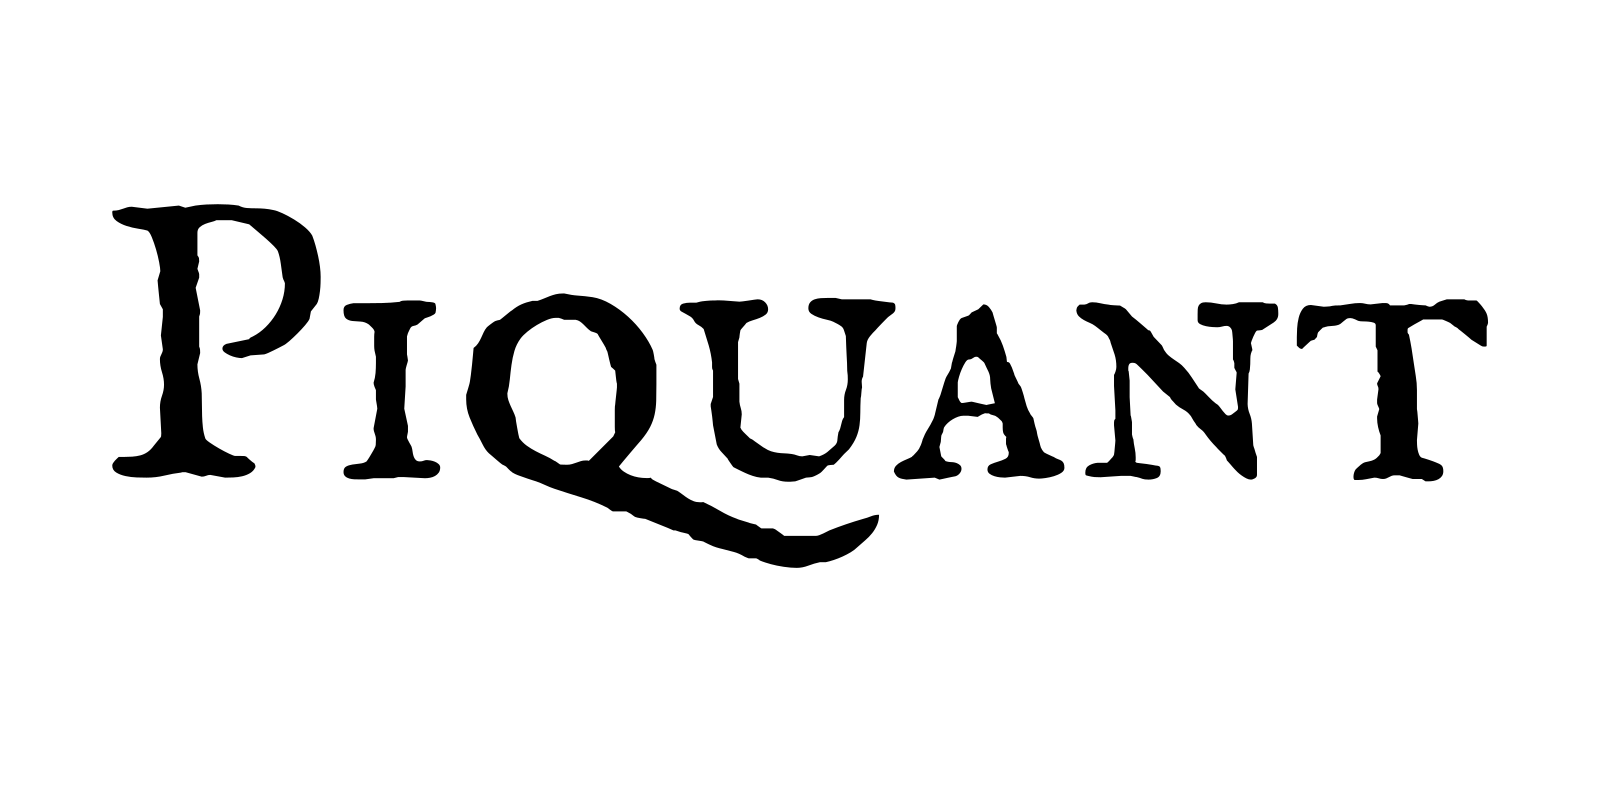 Piquant wordmark